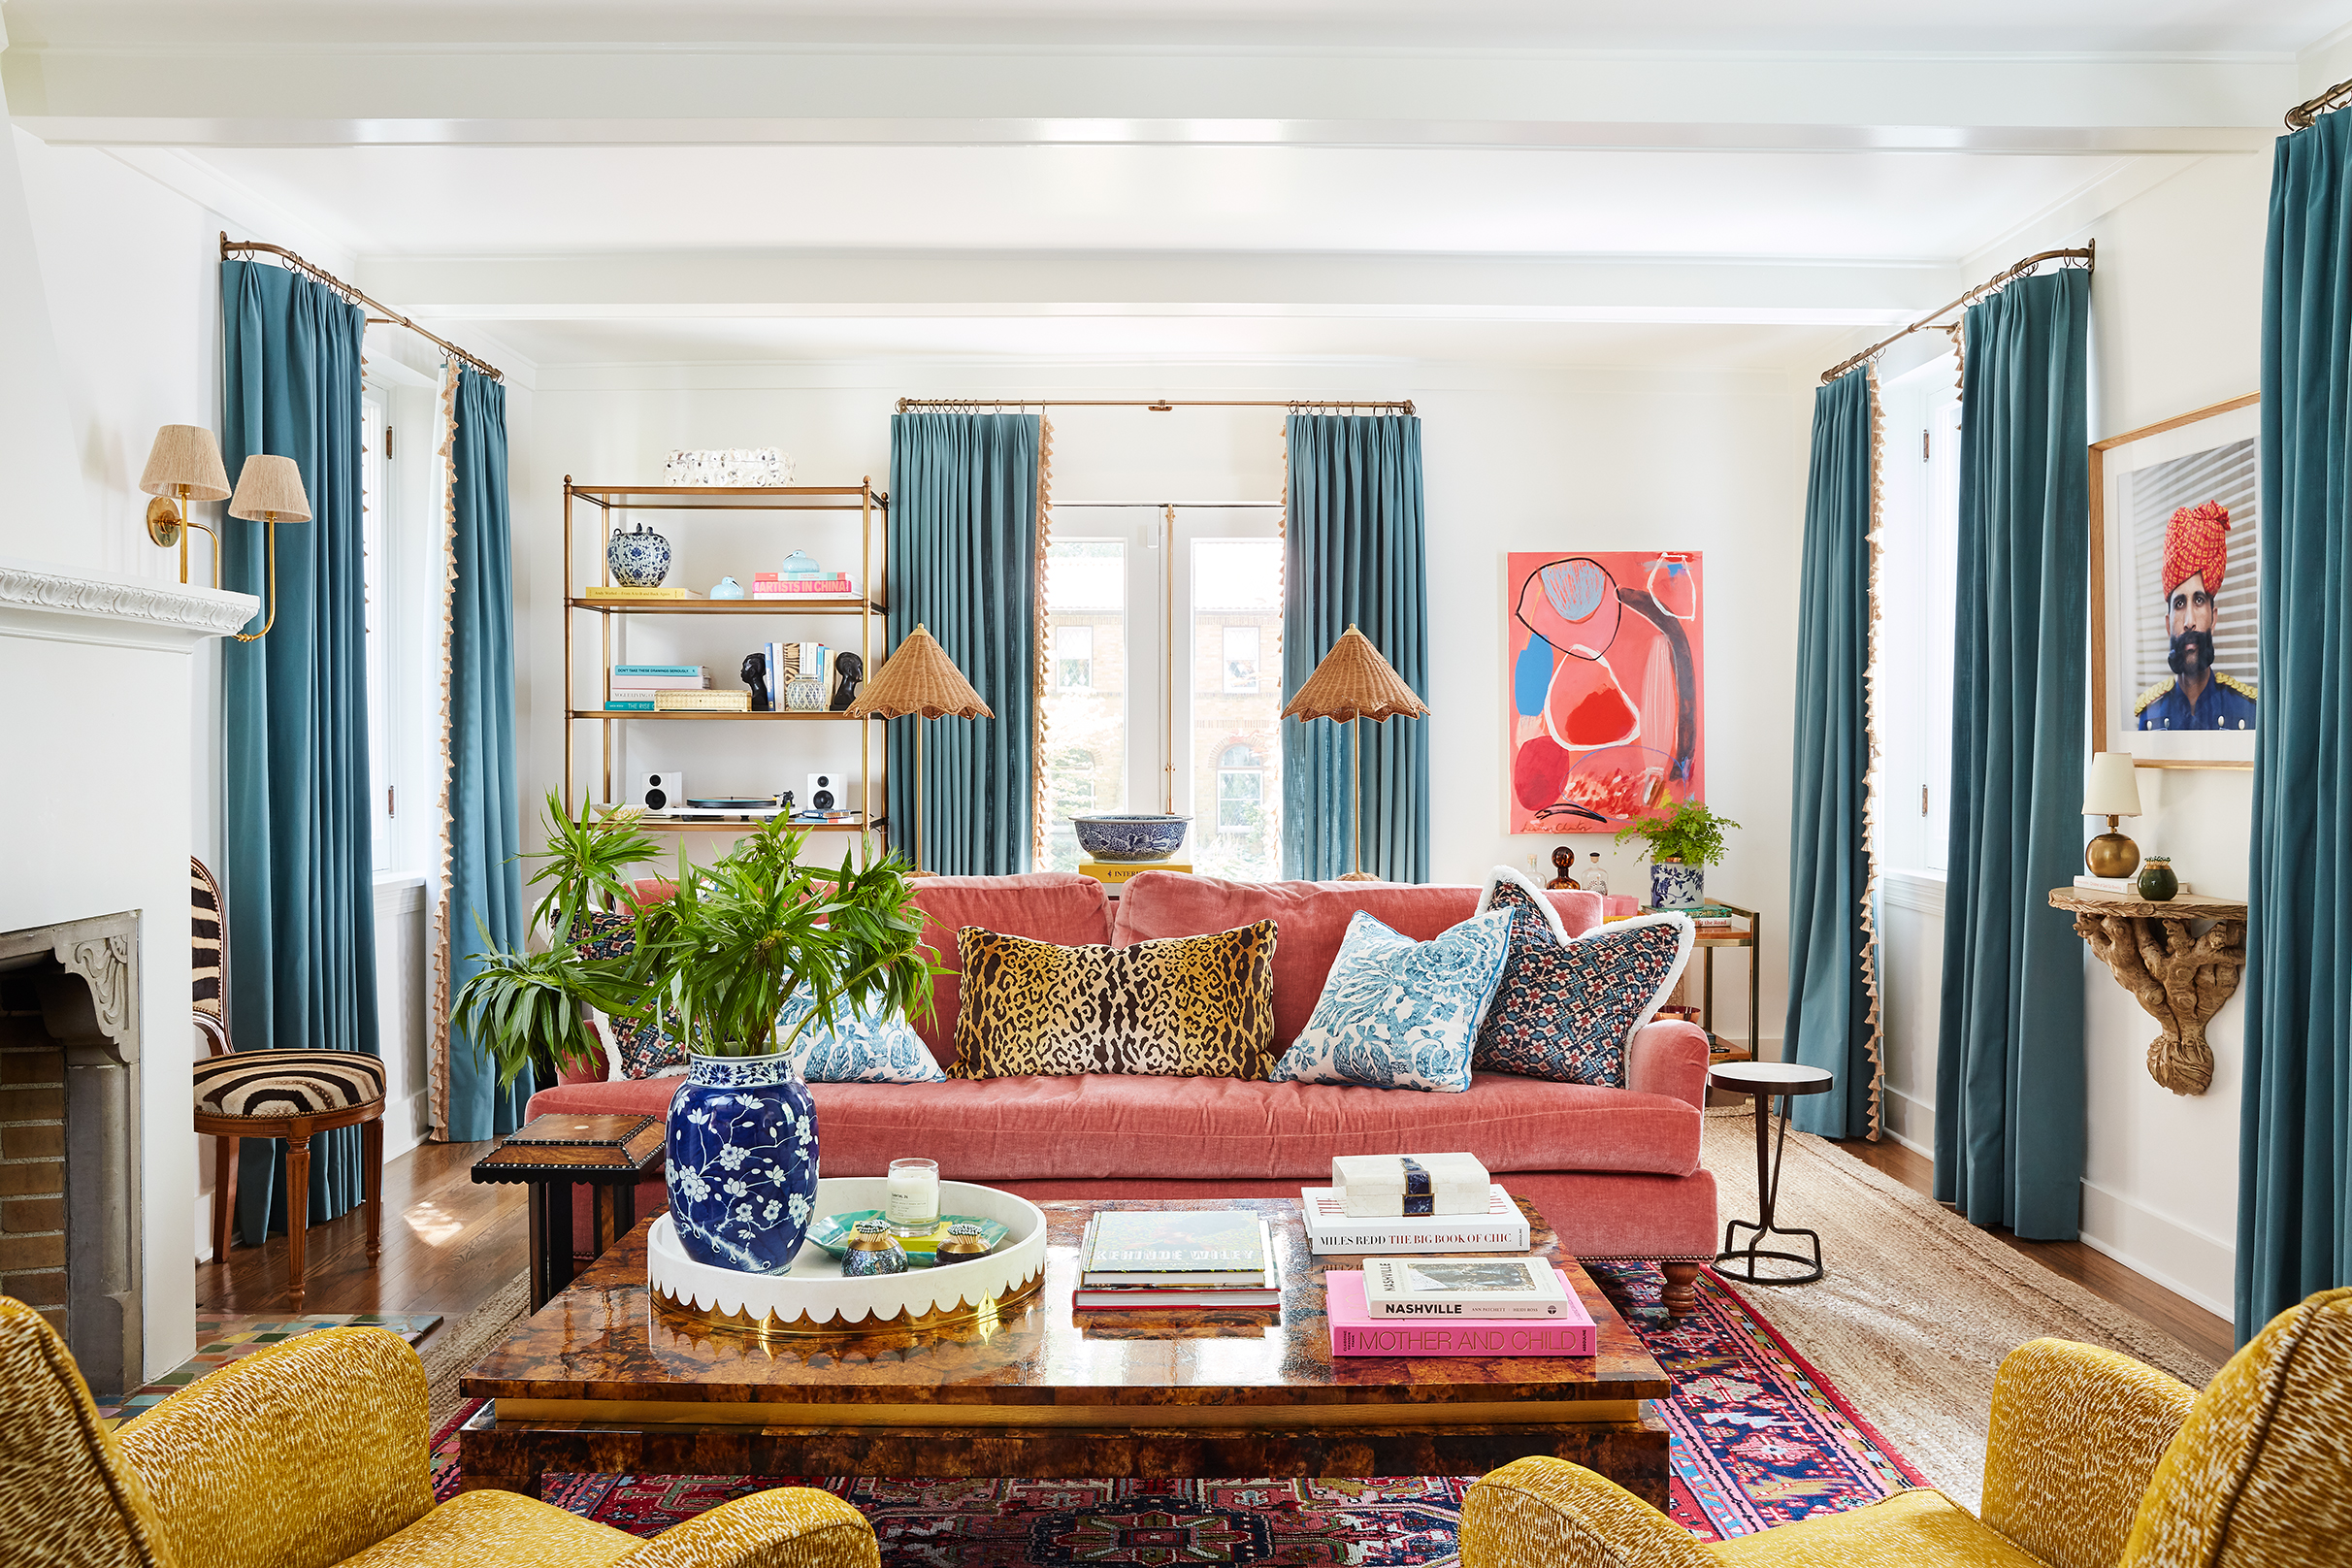 Kingsbury Project: Living room couch